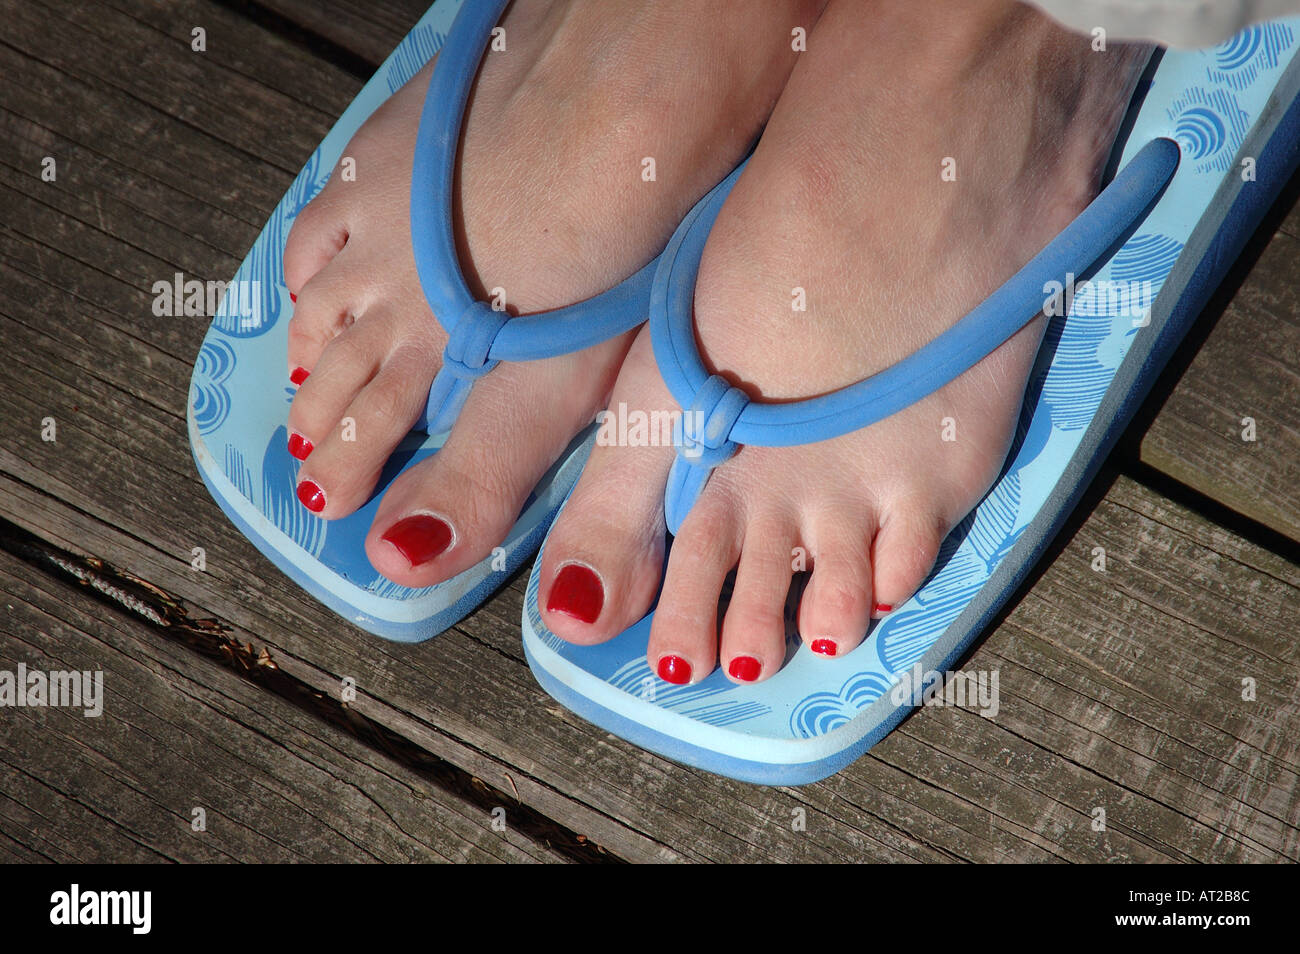 Useful phrase flip flop feet consider, that